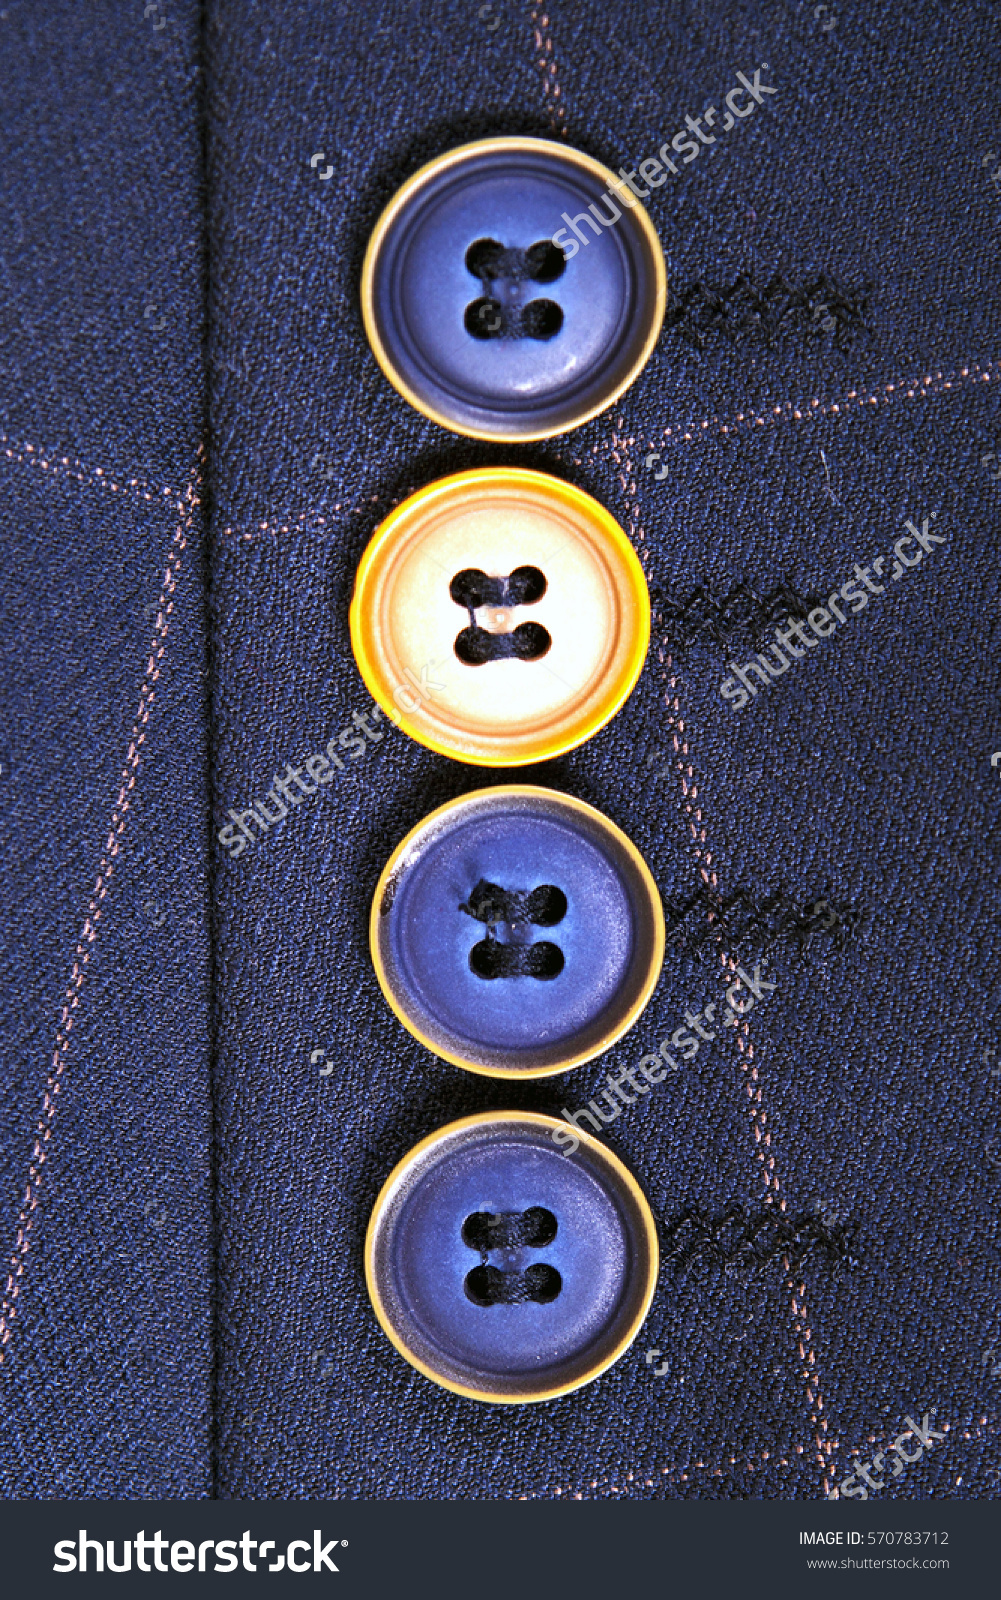 stock-photo-accessories-of-a-men-s-suit-buttons-on-a-sleeve-570783712.jpg